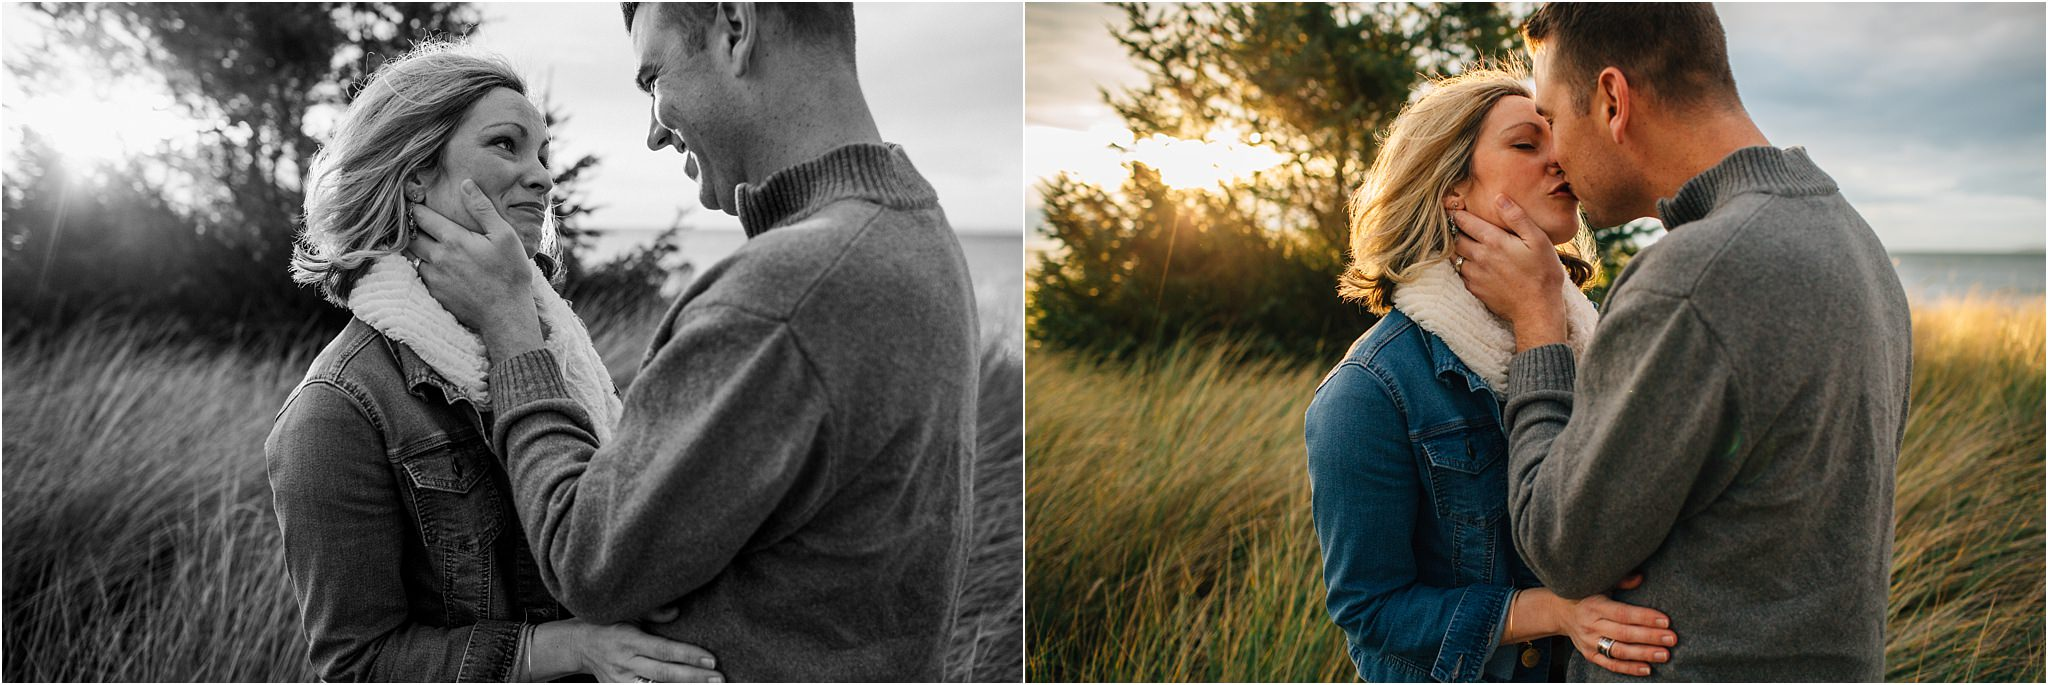 Whidbey-Island-Family-Photographer-Kara-Chappell-Photography_0029.jpg